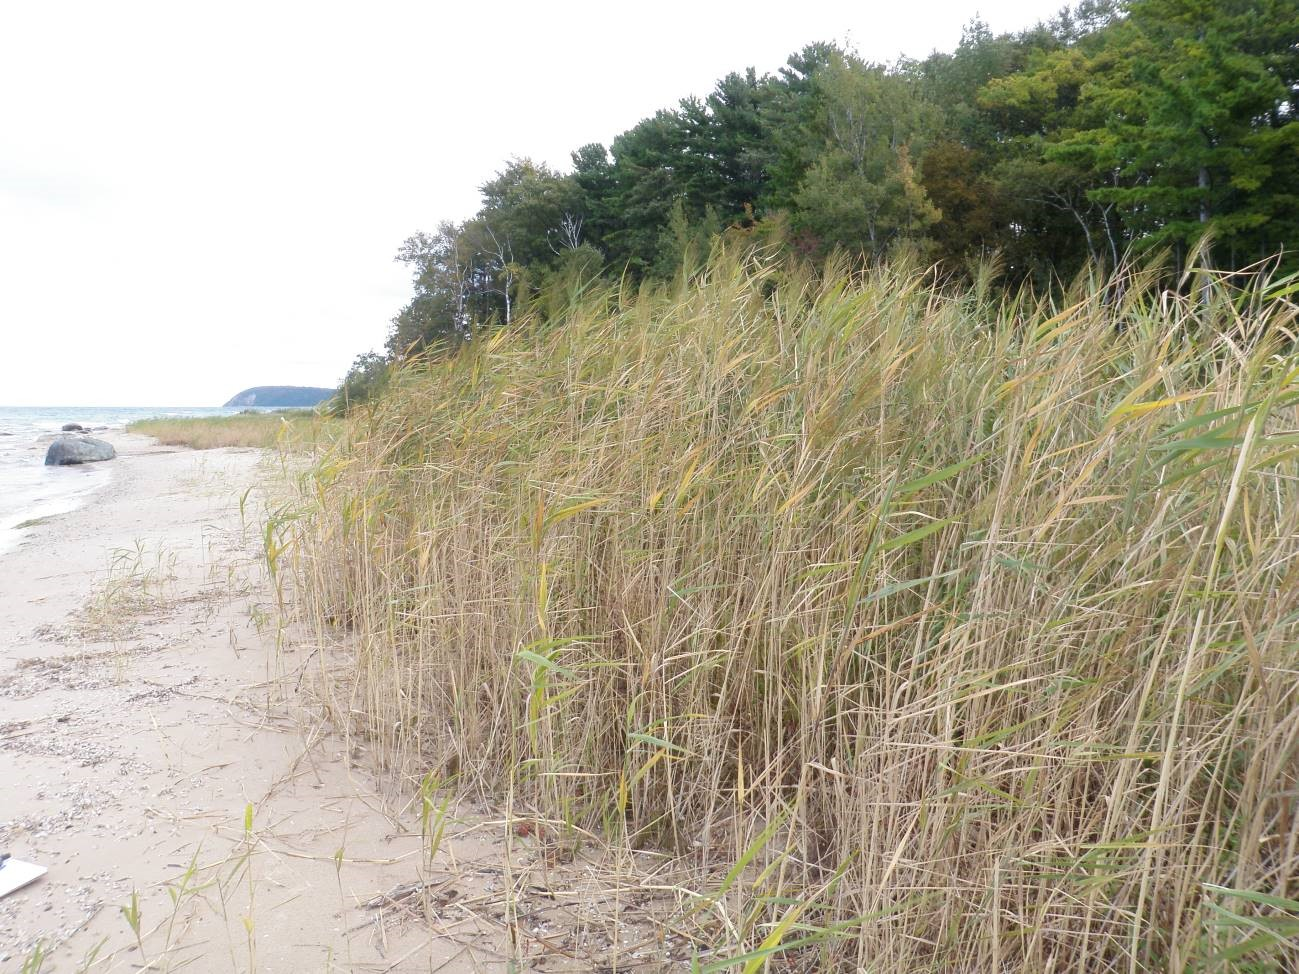 A Phragmites stand in the Lighthouse West Preserve, which was removed by the Leelanau Conservancy. Credit: Shaun Howard/Leelanau Conservancy